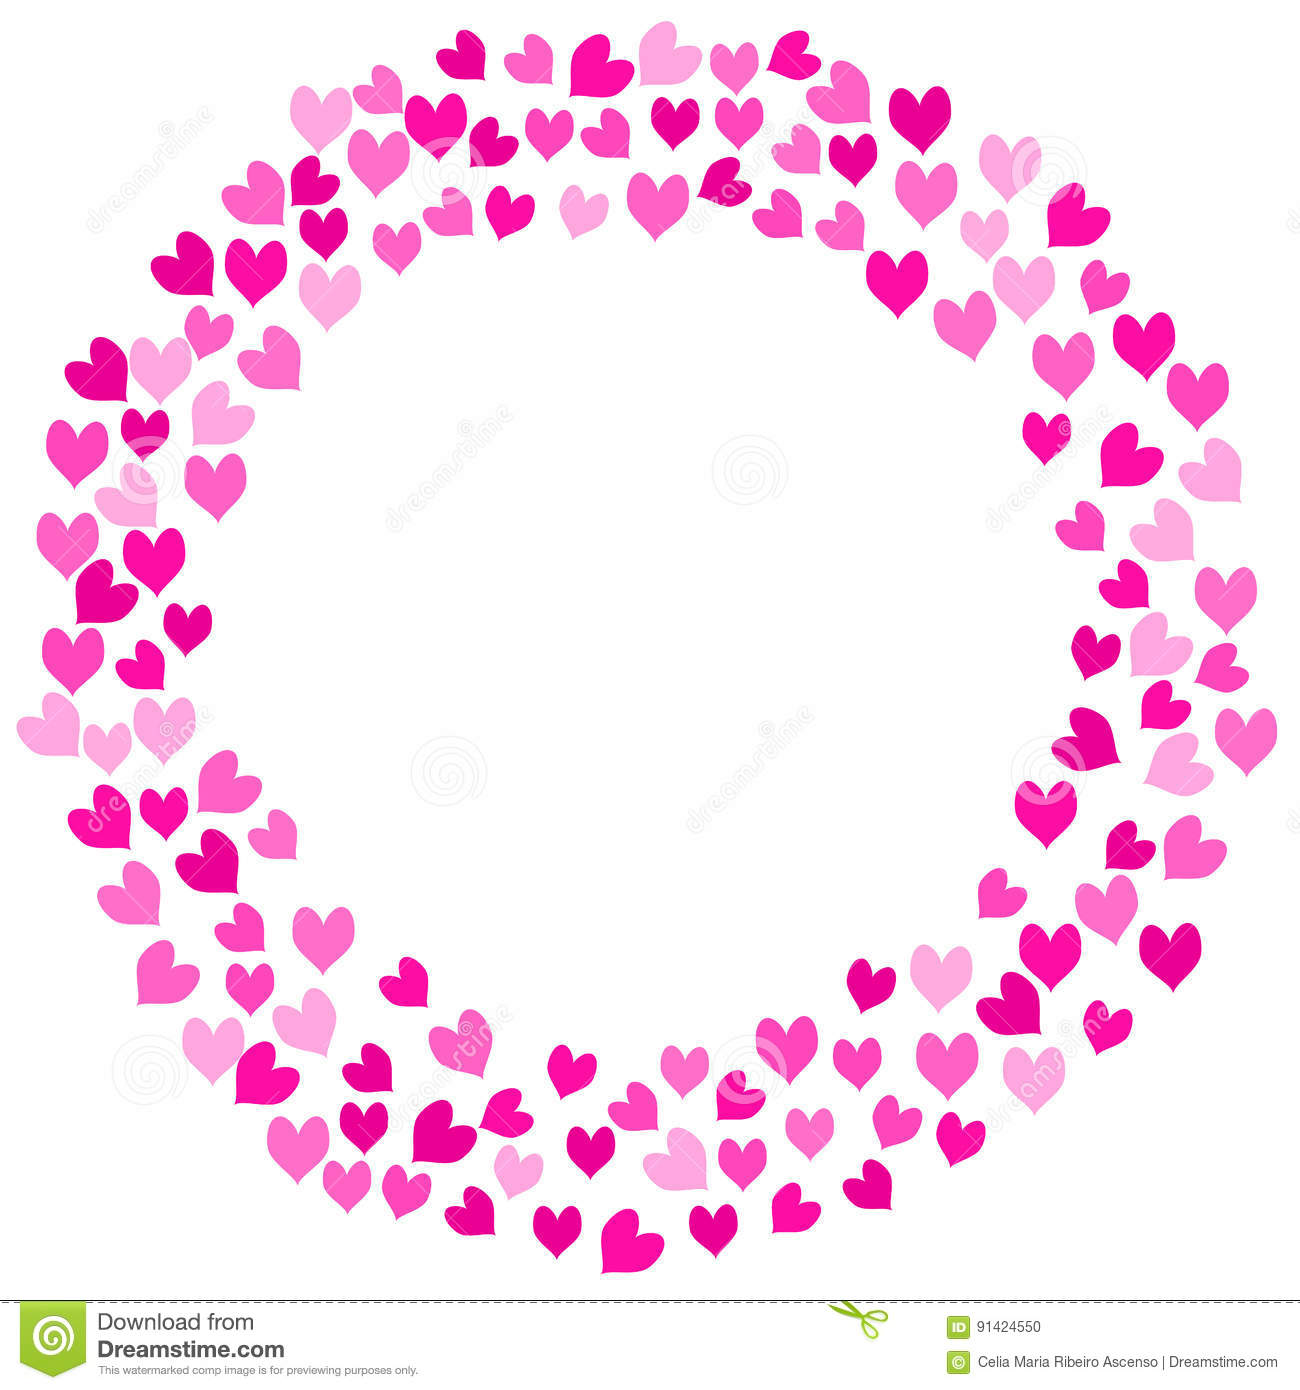 Marco Circular Del Amor Stock Photos - Royalty Free Images